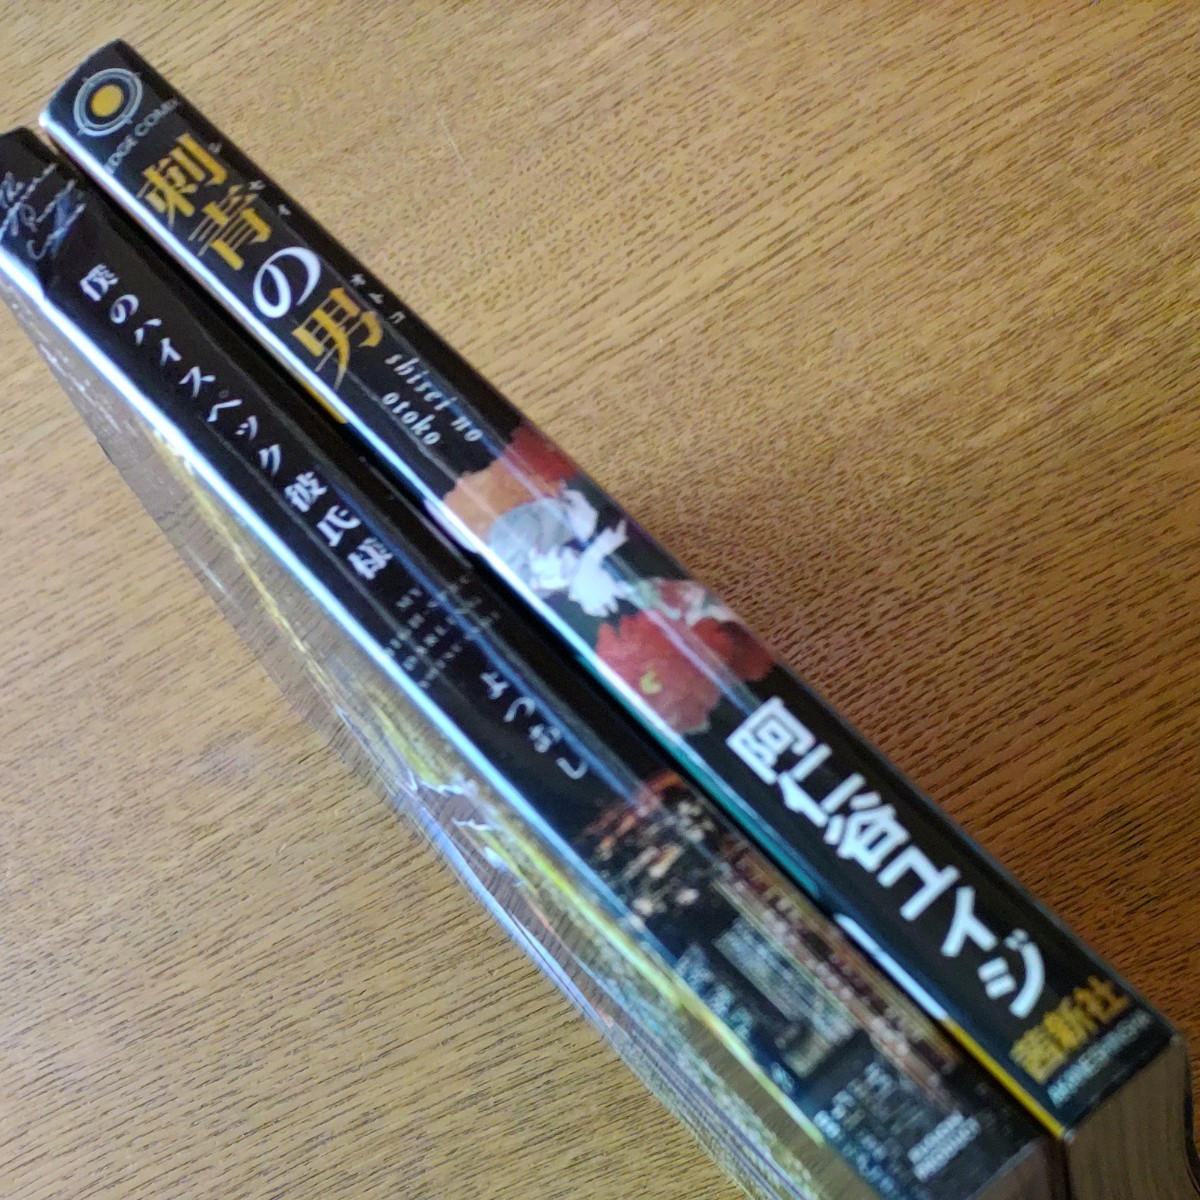 BLコミック 2冊セット